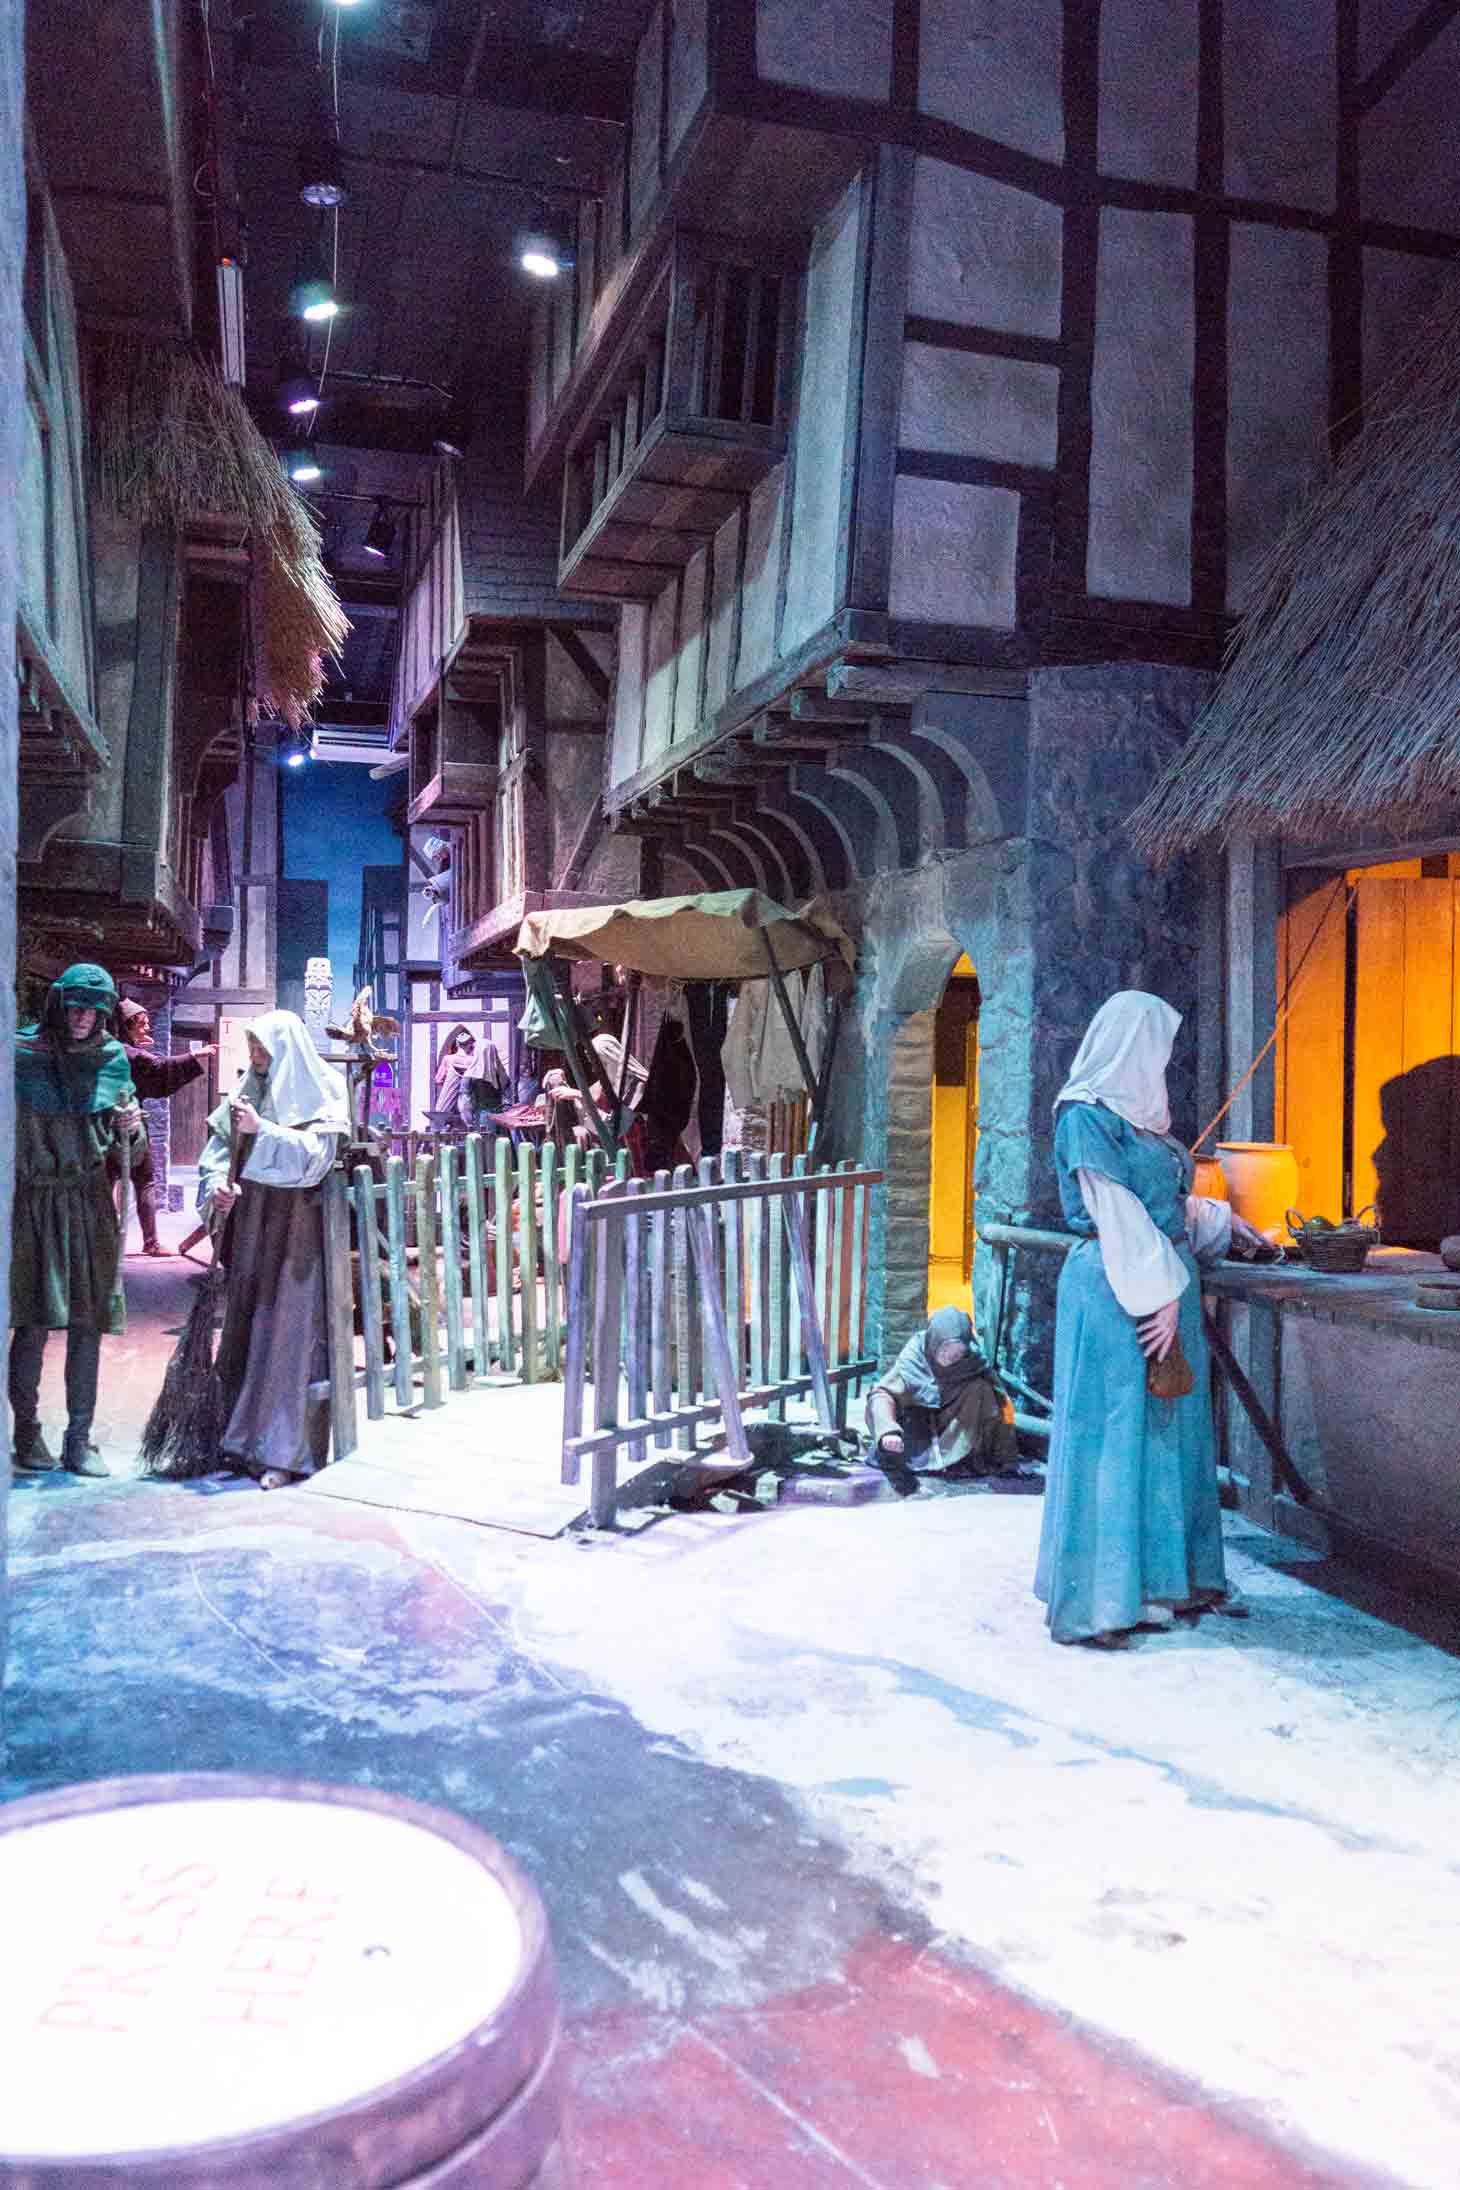 County Kerry Museum features a life-like medieval village that will thrill children and adults.